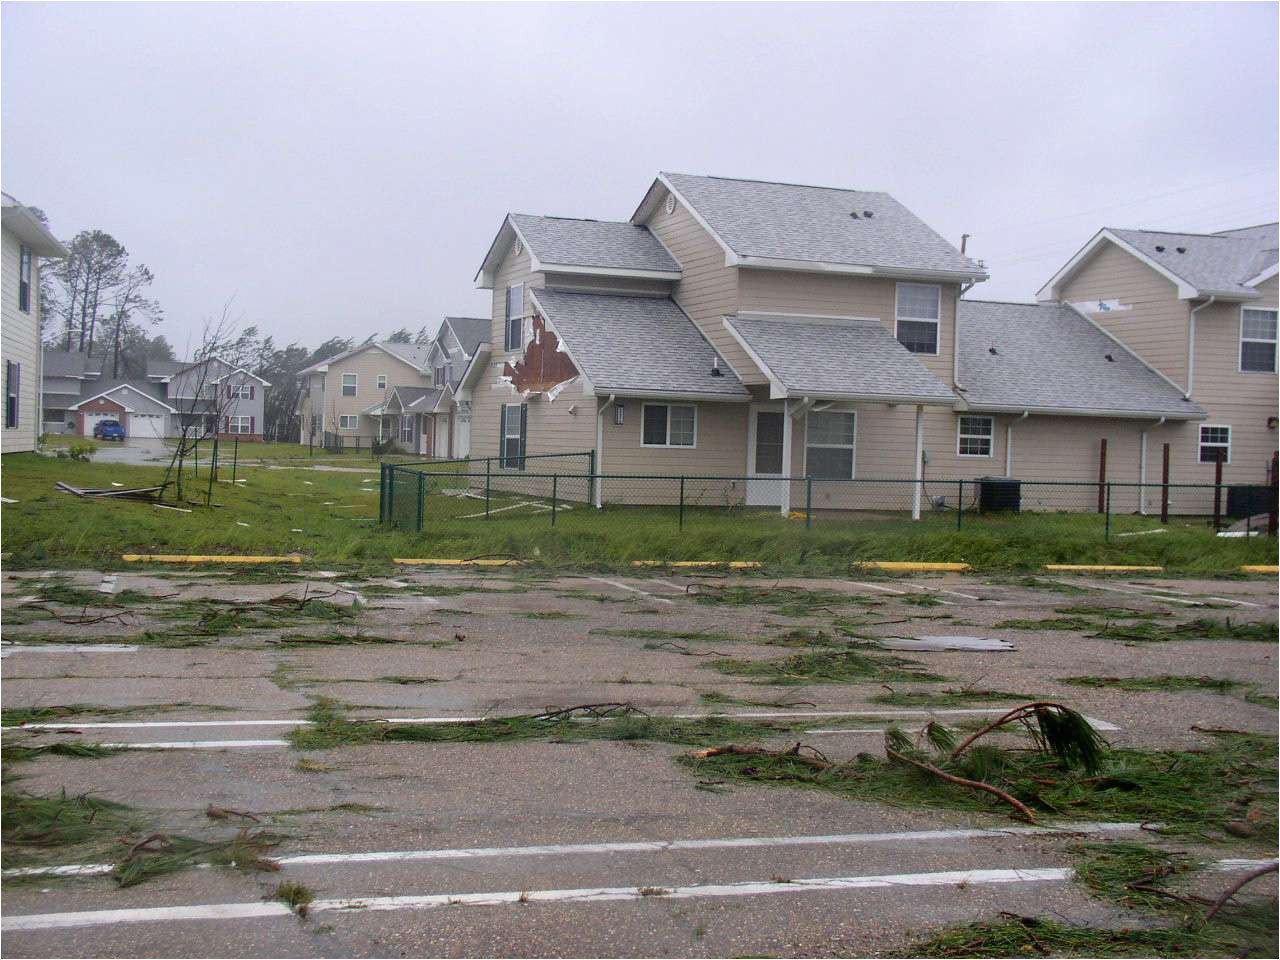 us navy 050902 n 0000x 002 the family housing area on board naval construction battalion center ncbc gulfport miss shows damage from hurricane katrina 5adf6b826bf06900373c5ac5 jpg